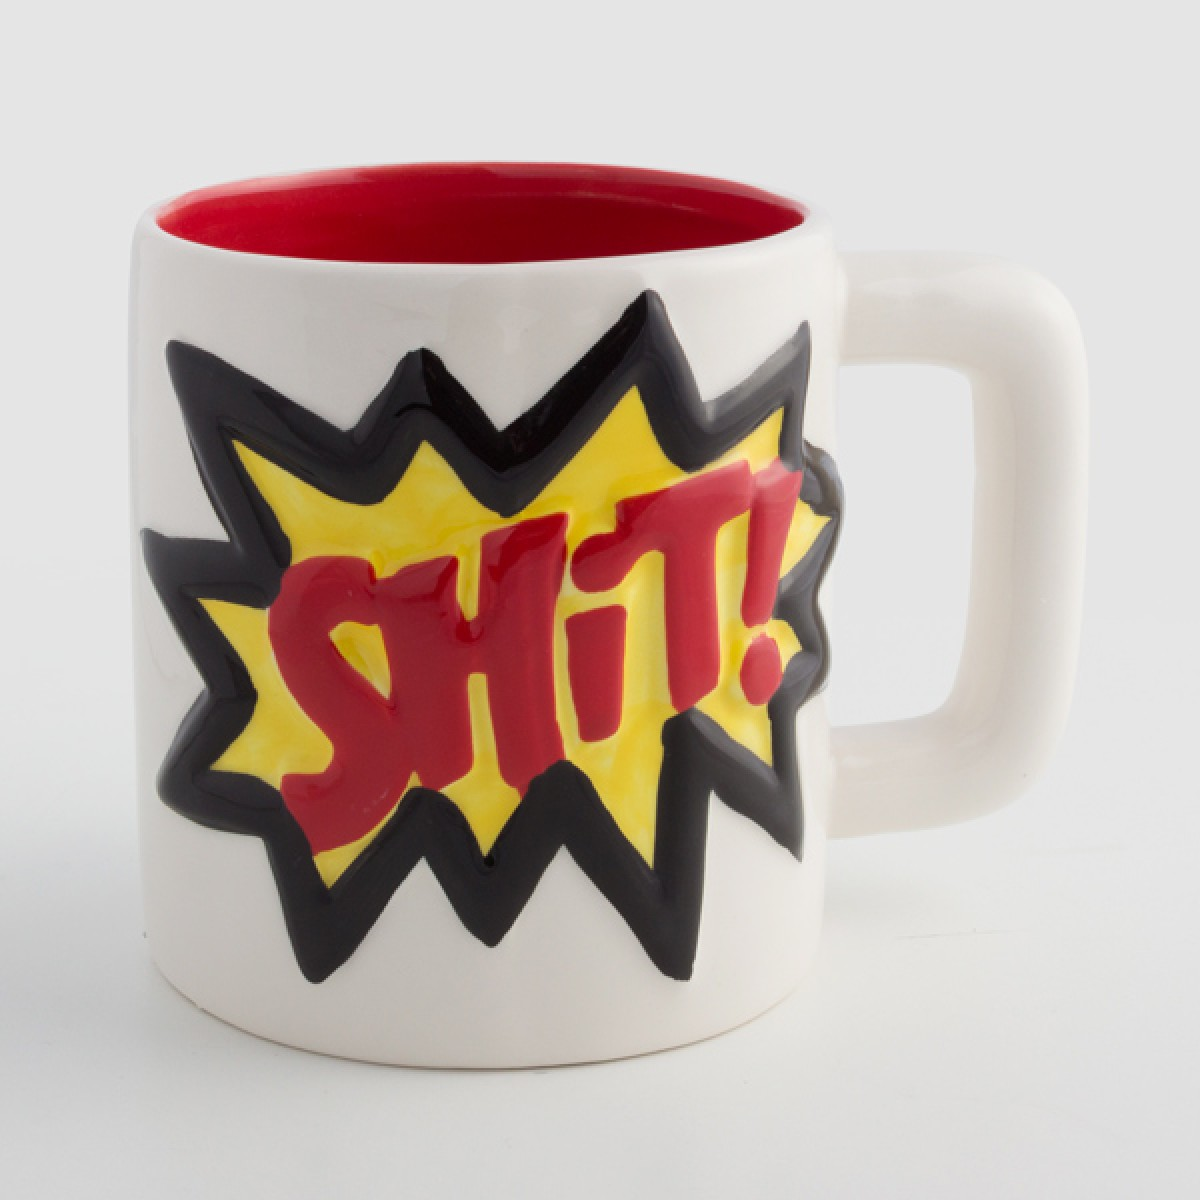 Slogans Krus i Keramik - Design: Shift!